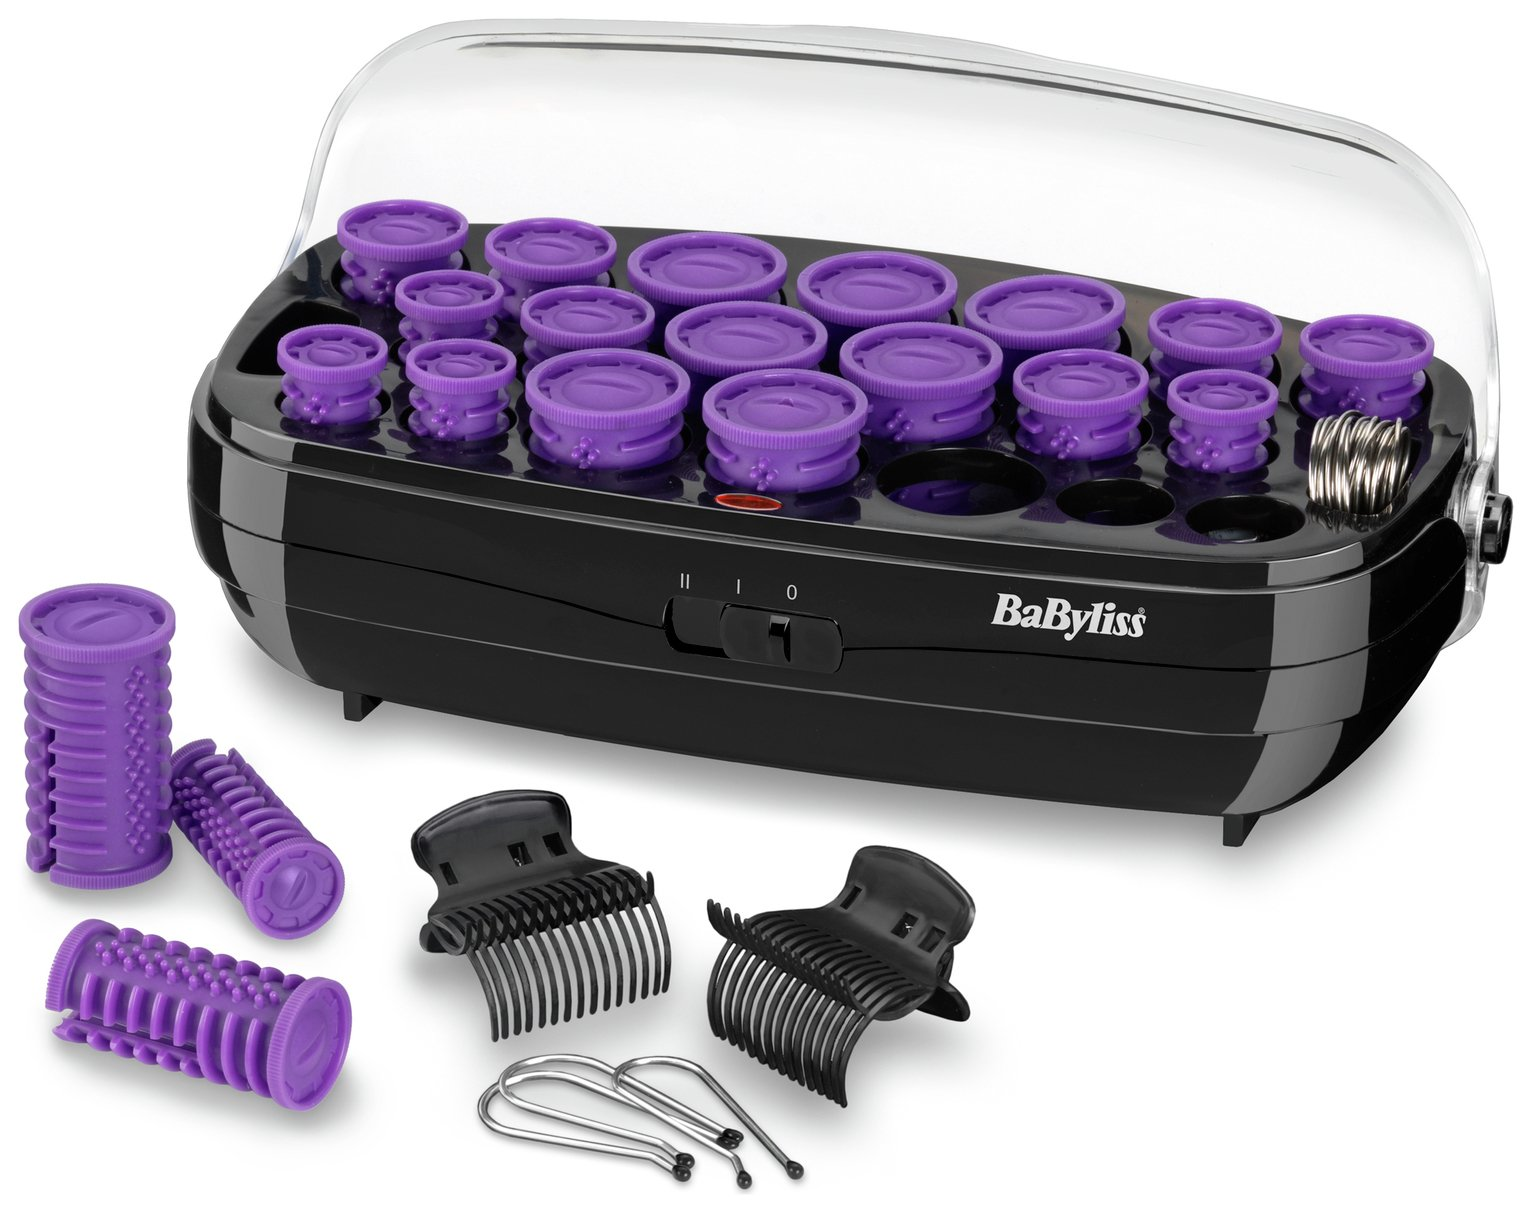 BaByliss Thermo Ceramic Heated Rollers